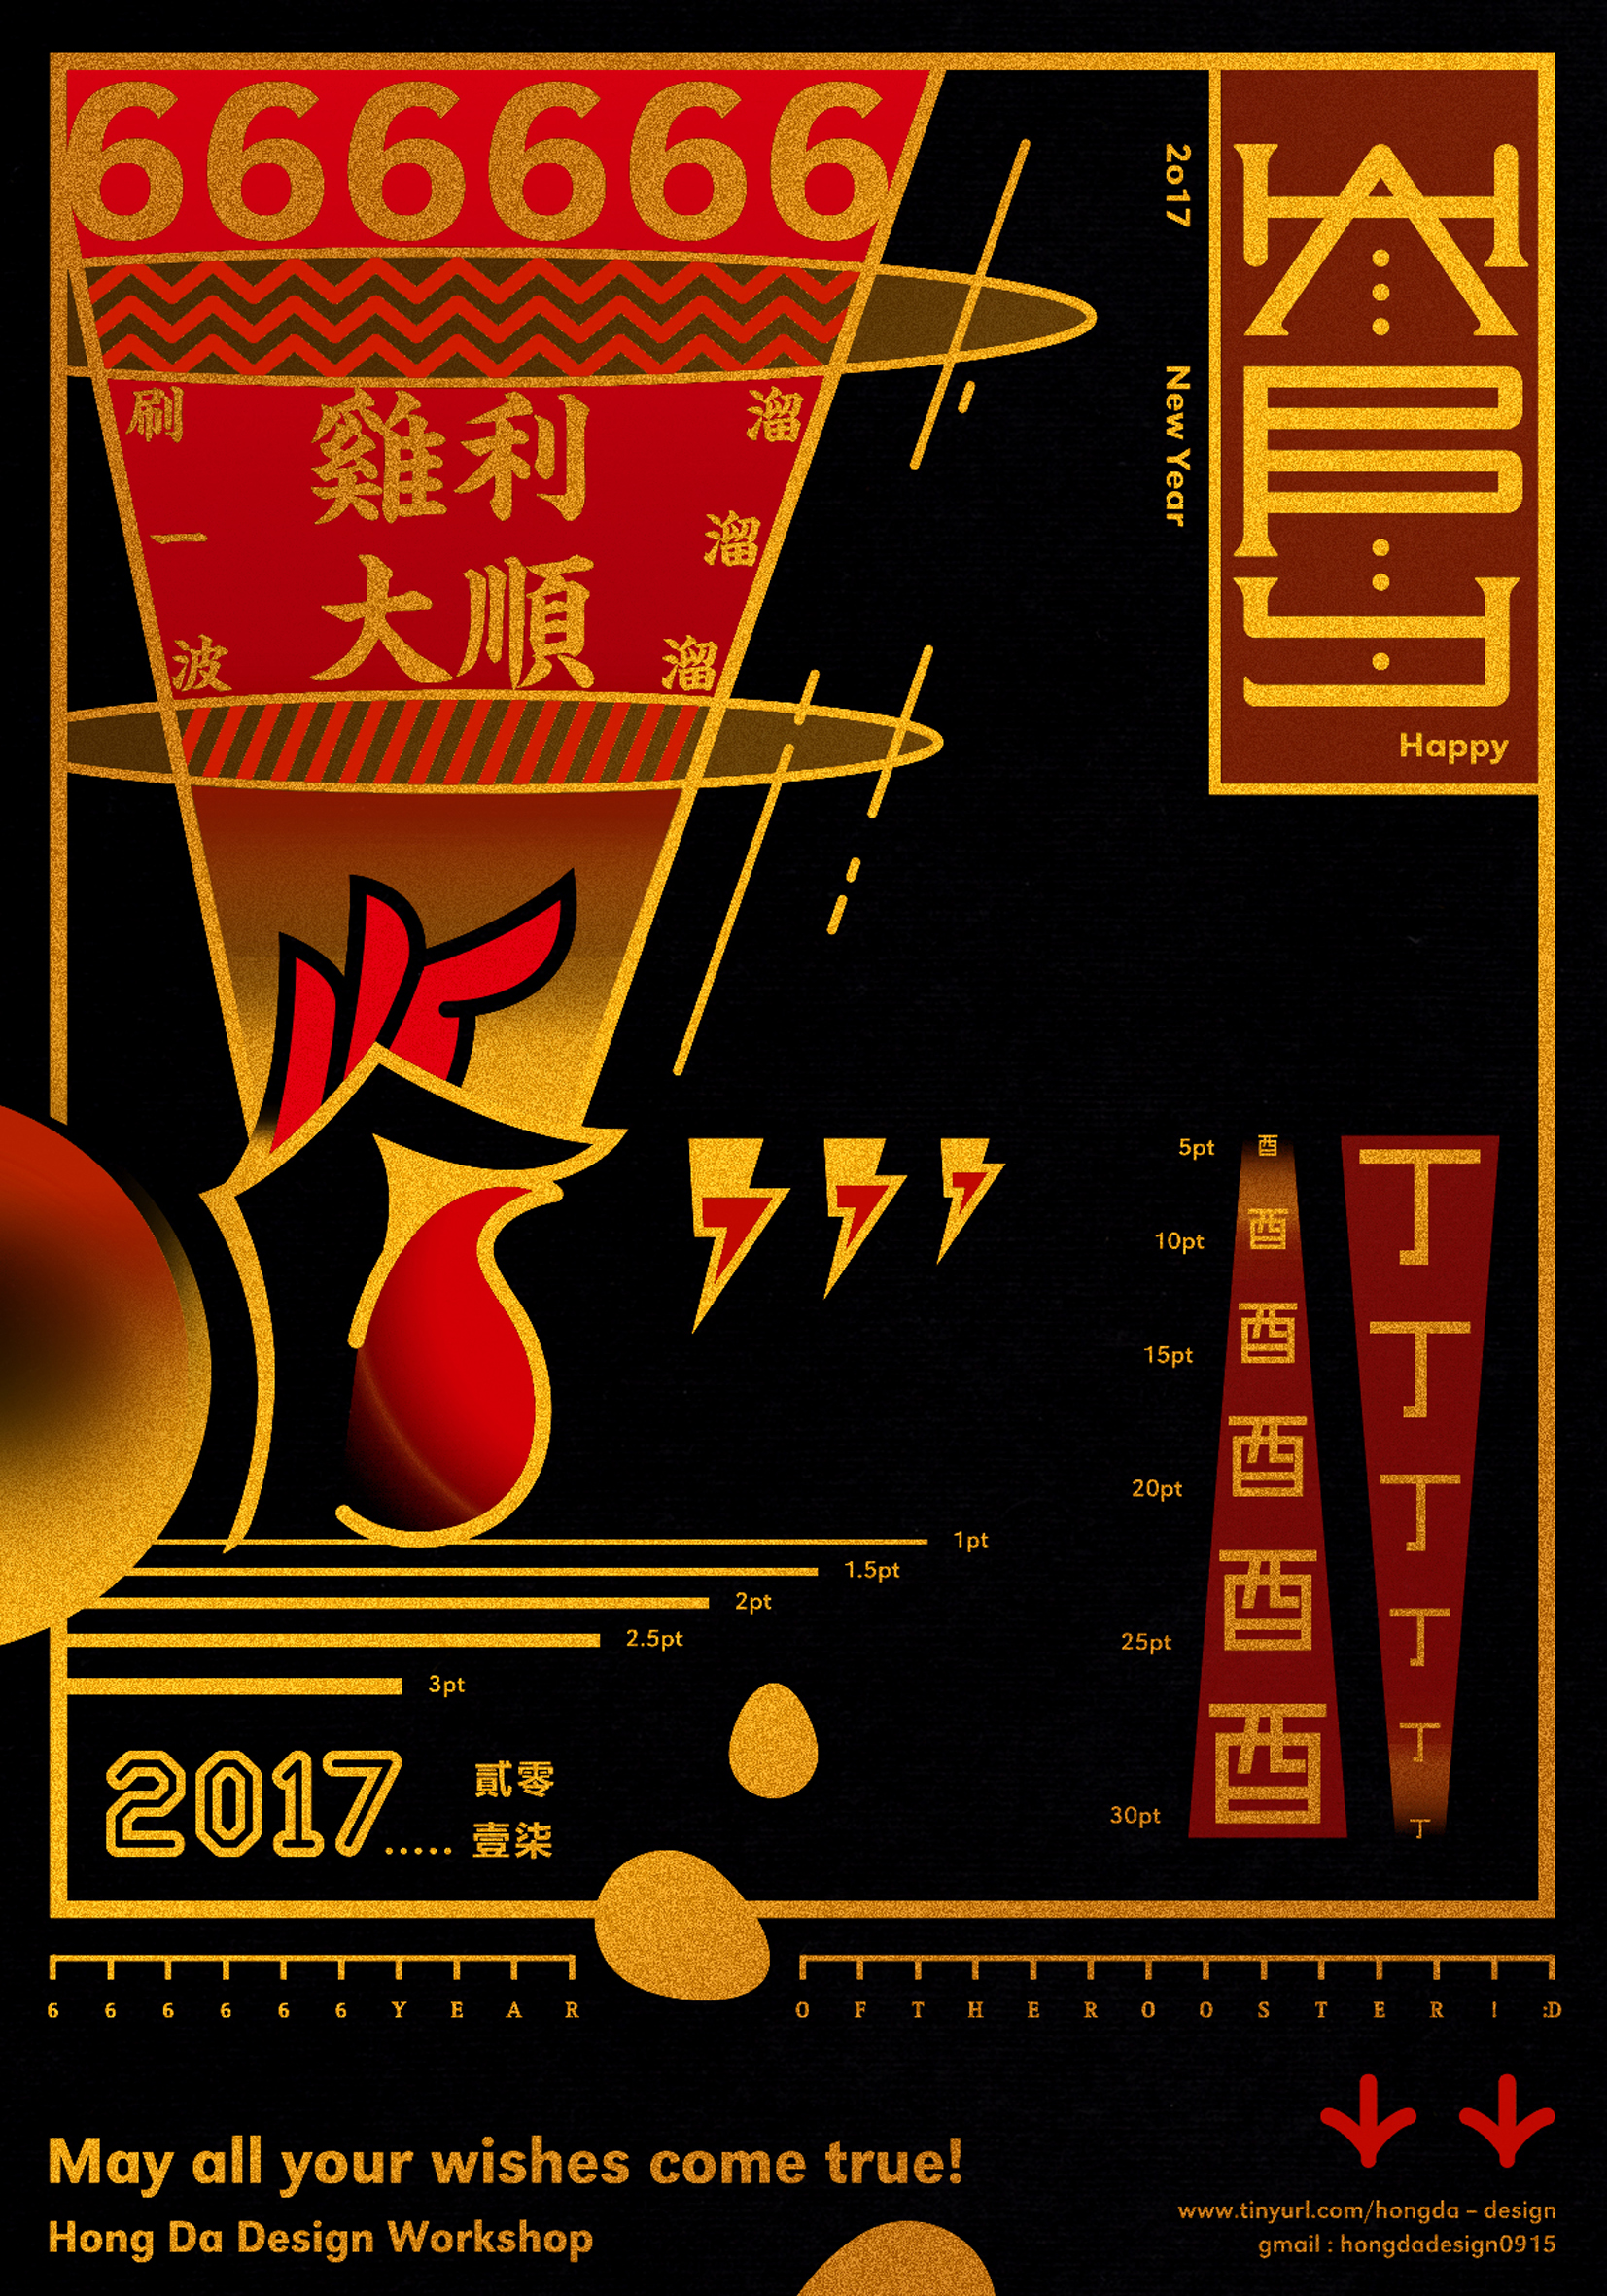 2017 Good Chinese 666666 / New Year Card Poster